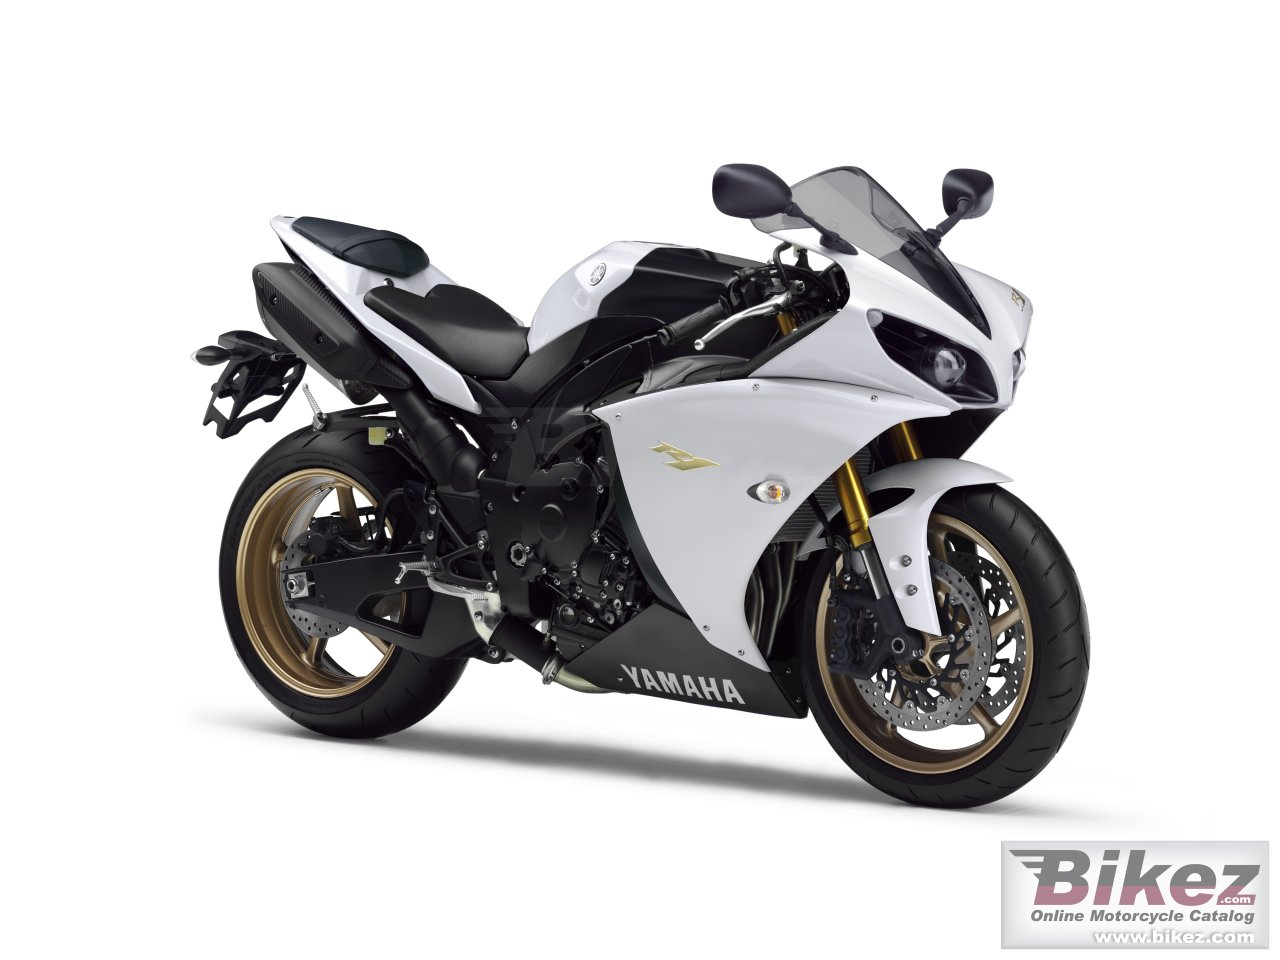 Big Yamaha yzf-r1 picture and wallpaper from Bikez.com